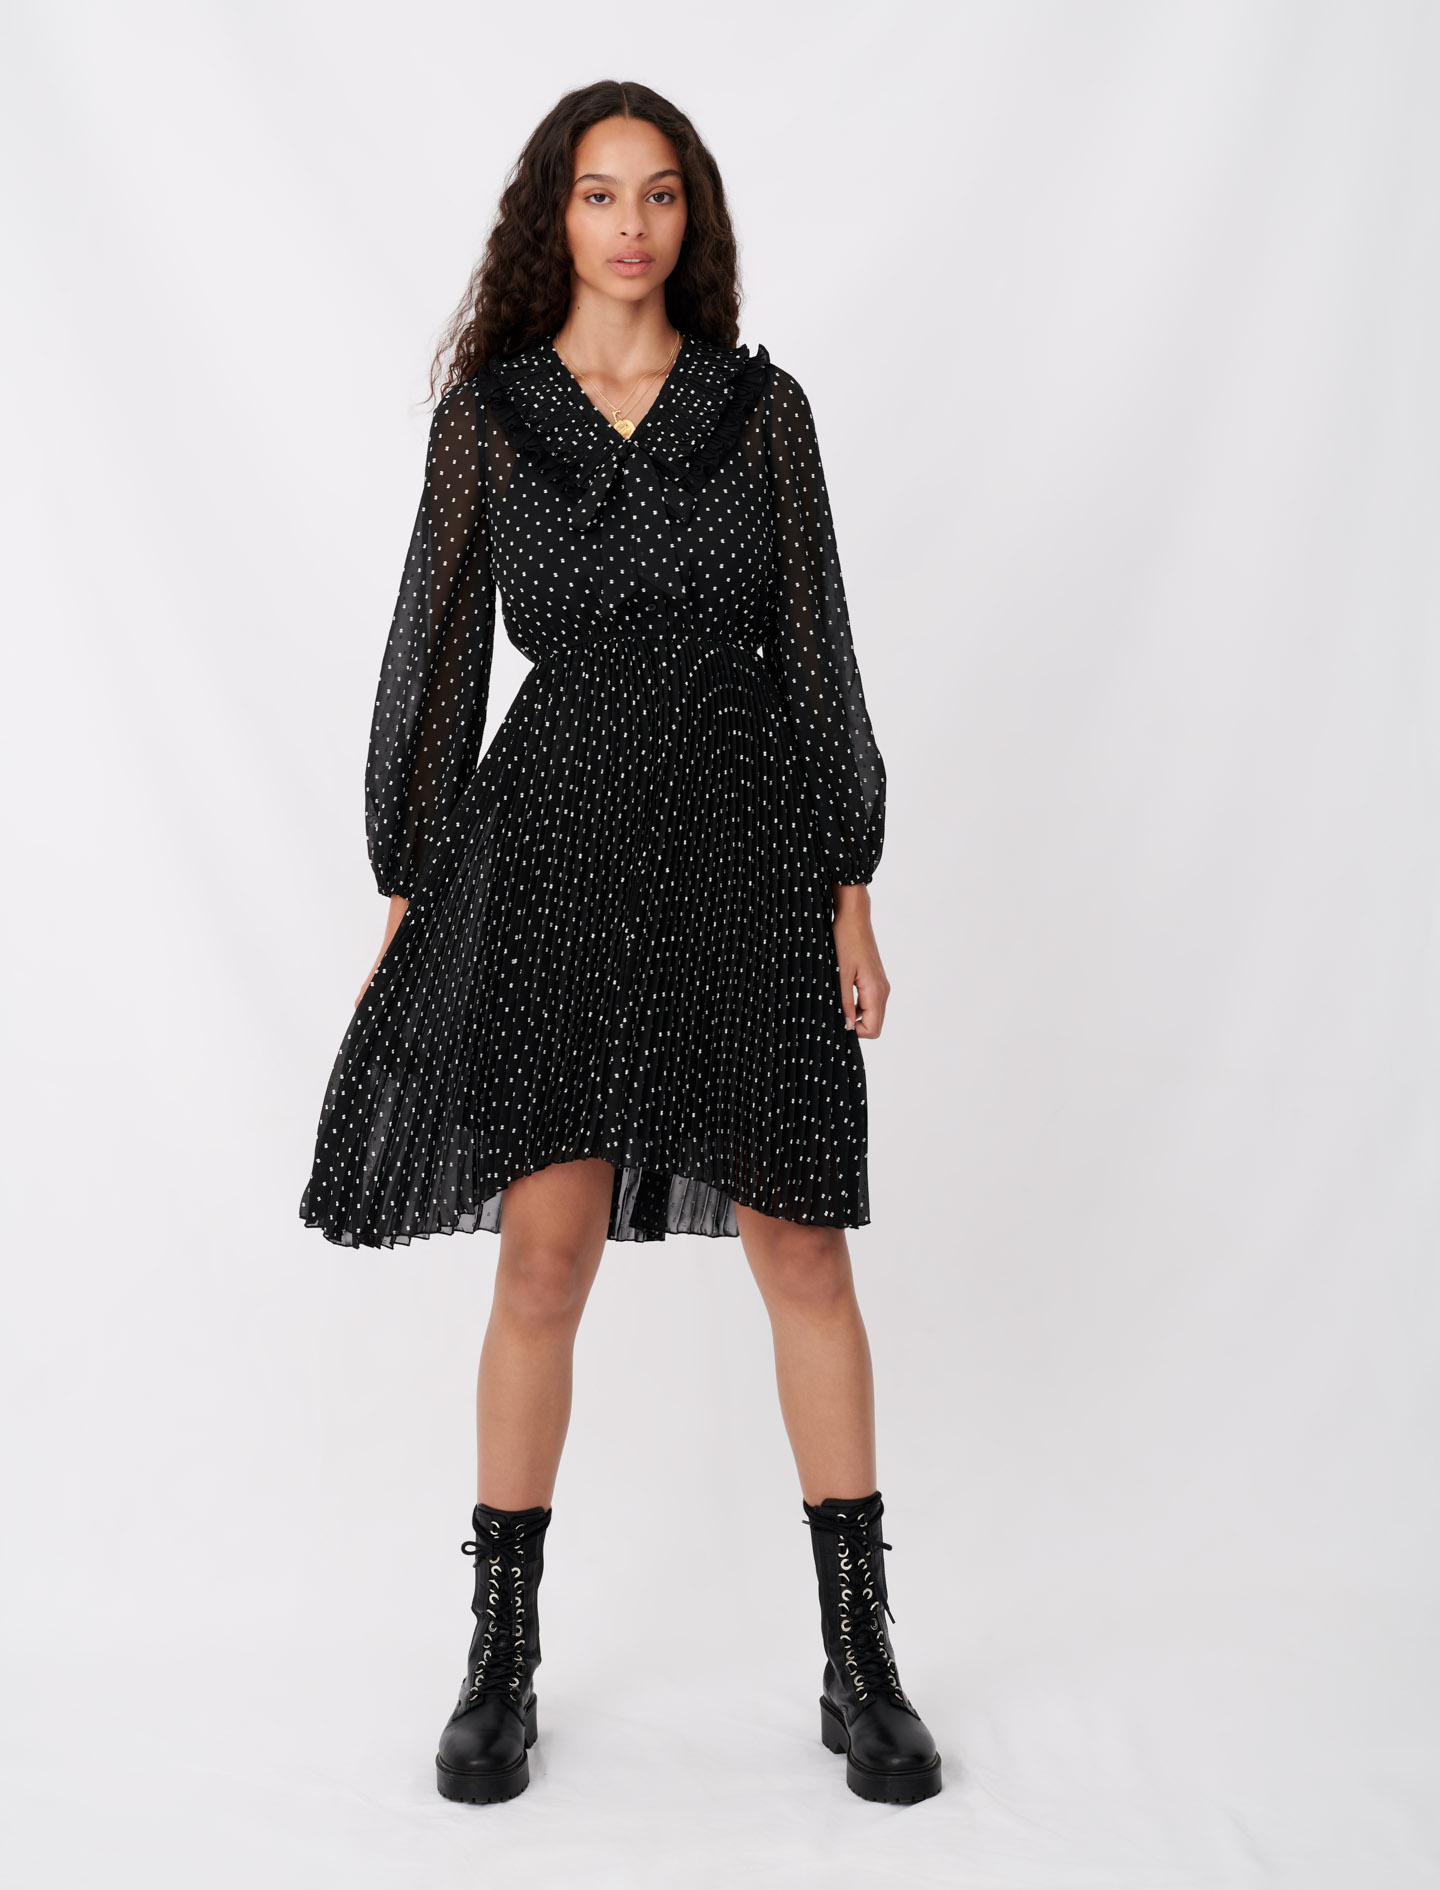 Polka dot effect pleated muslin dress  - Multiclr